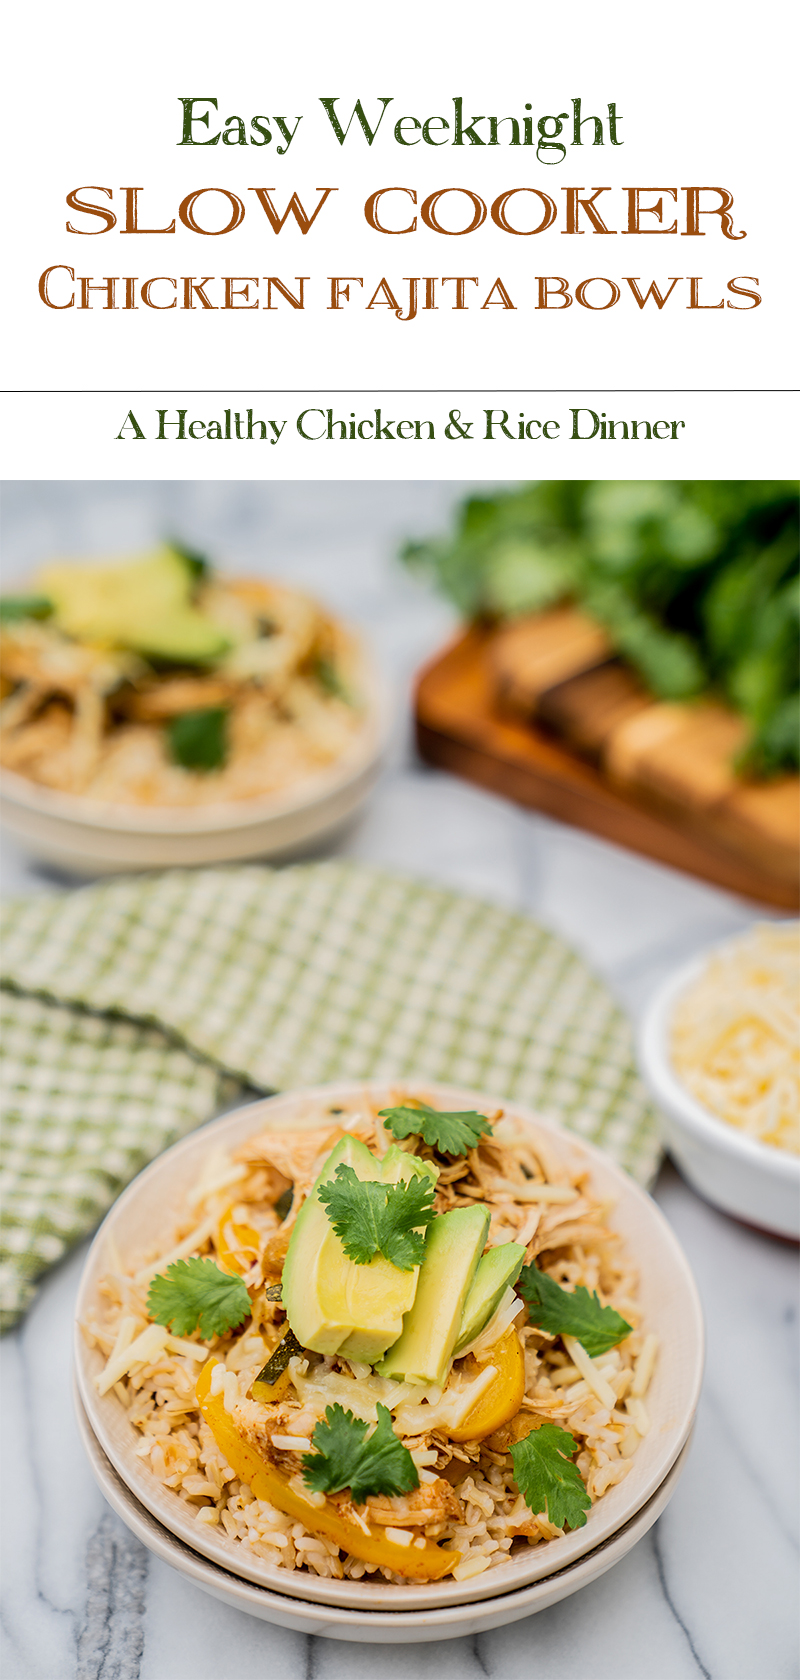 Easy-and-Healthy-Slow-Cooker-Chicken-Fajita-Rice-Bowls